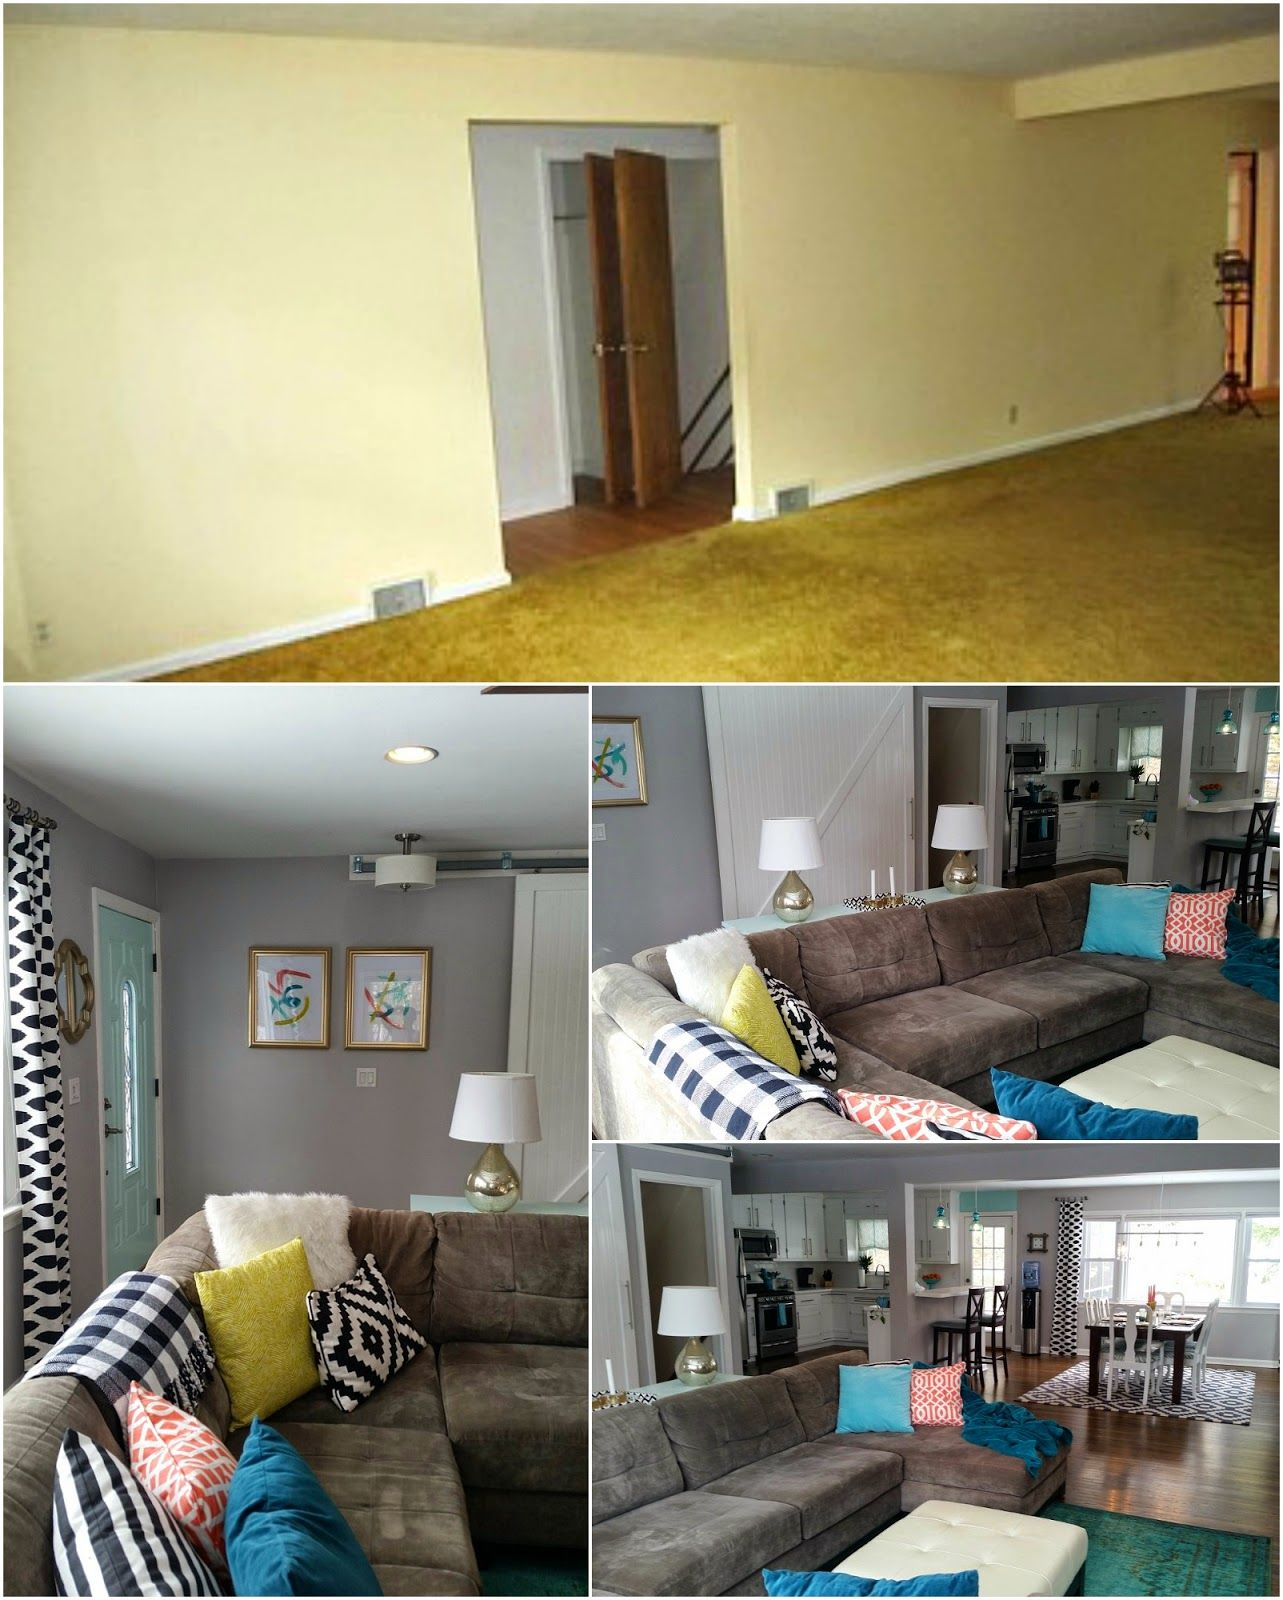 Living Room Renovation Before And After retro ranch reno: our rancher: before & after - the living room